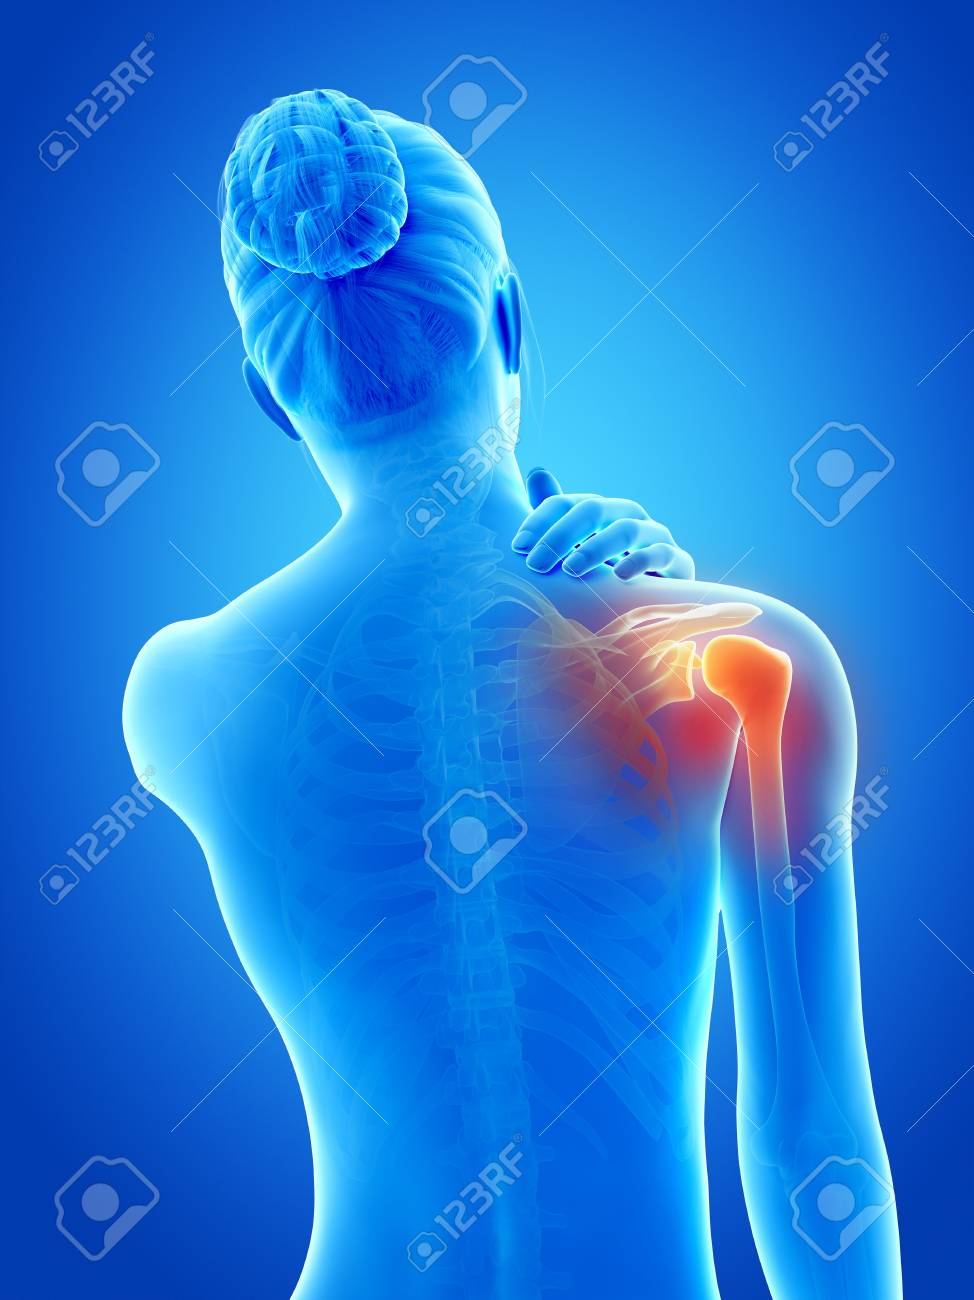 Human Shoulder Pain, Illustration Stock Photo, Picture And Royalty ...